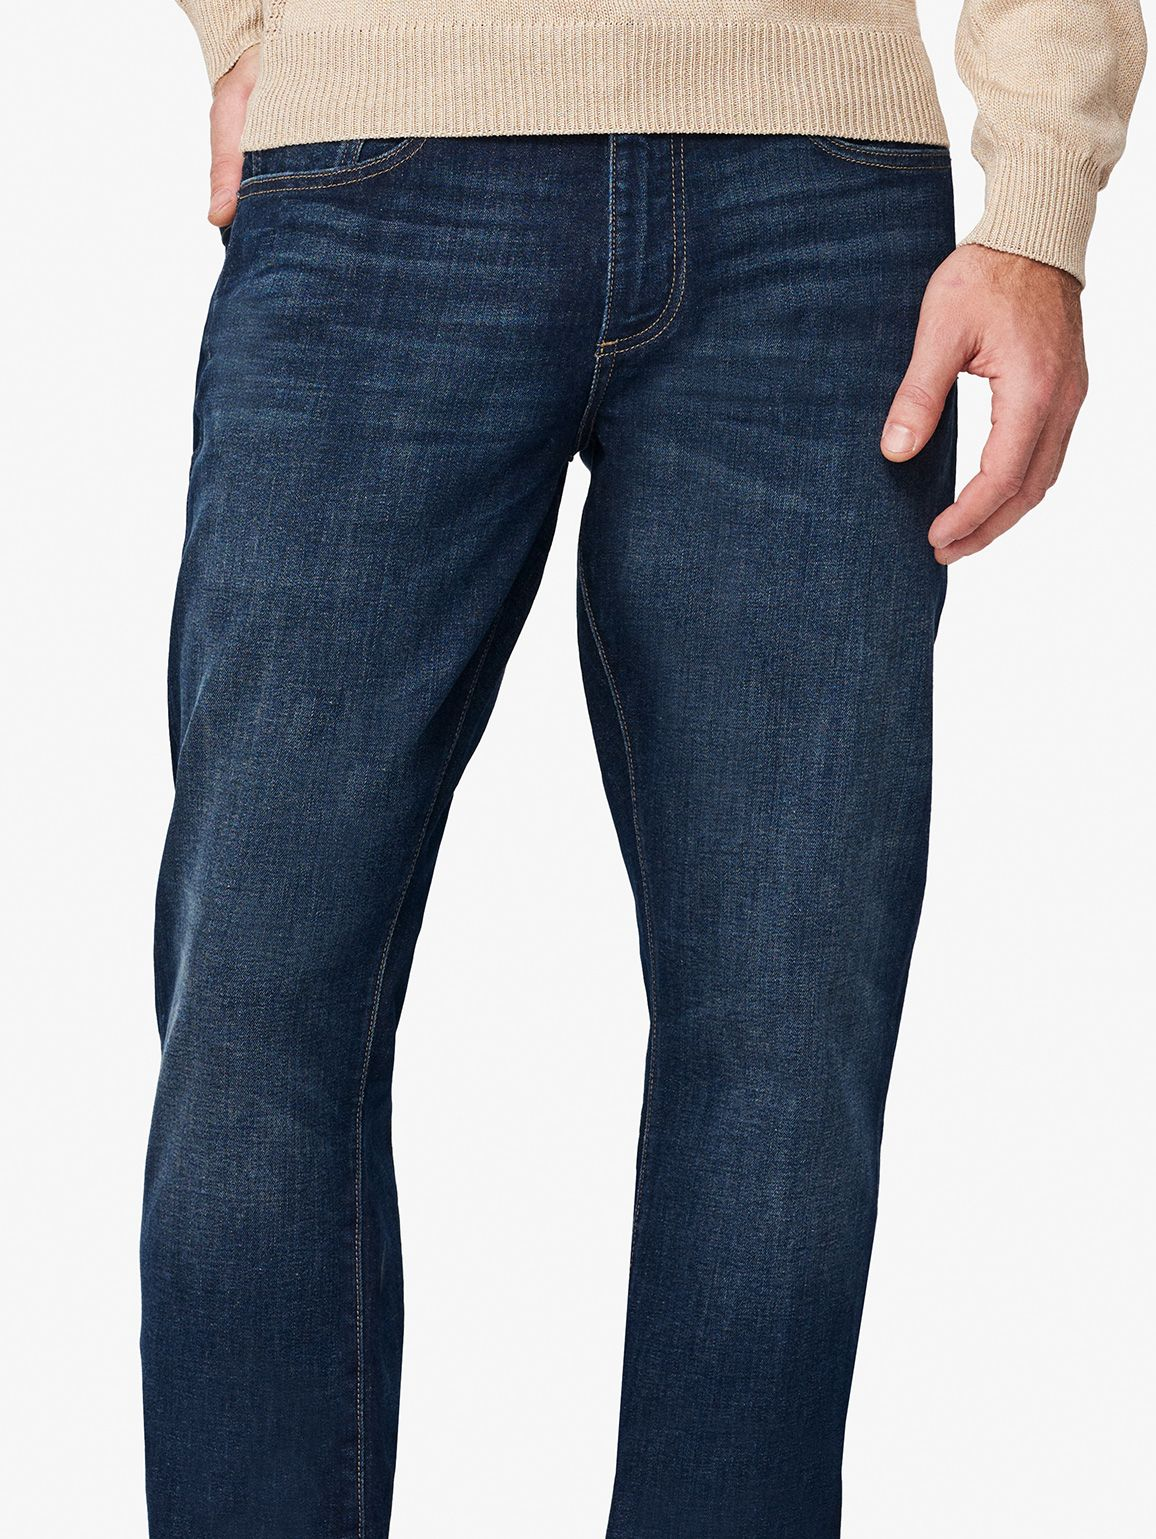 Men - Russell Slim Straight | Passage - DL1961